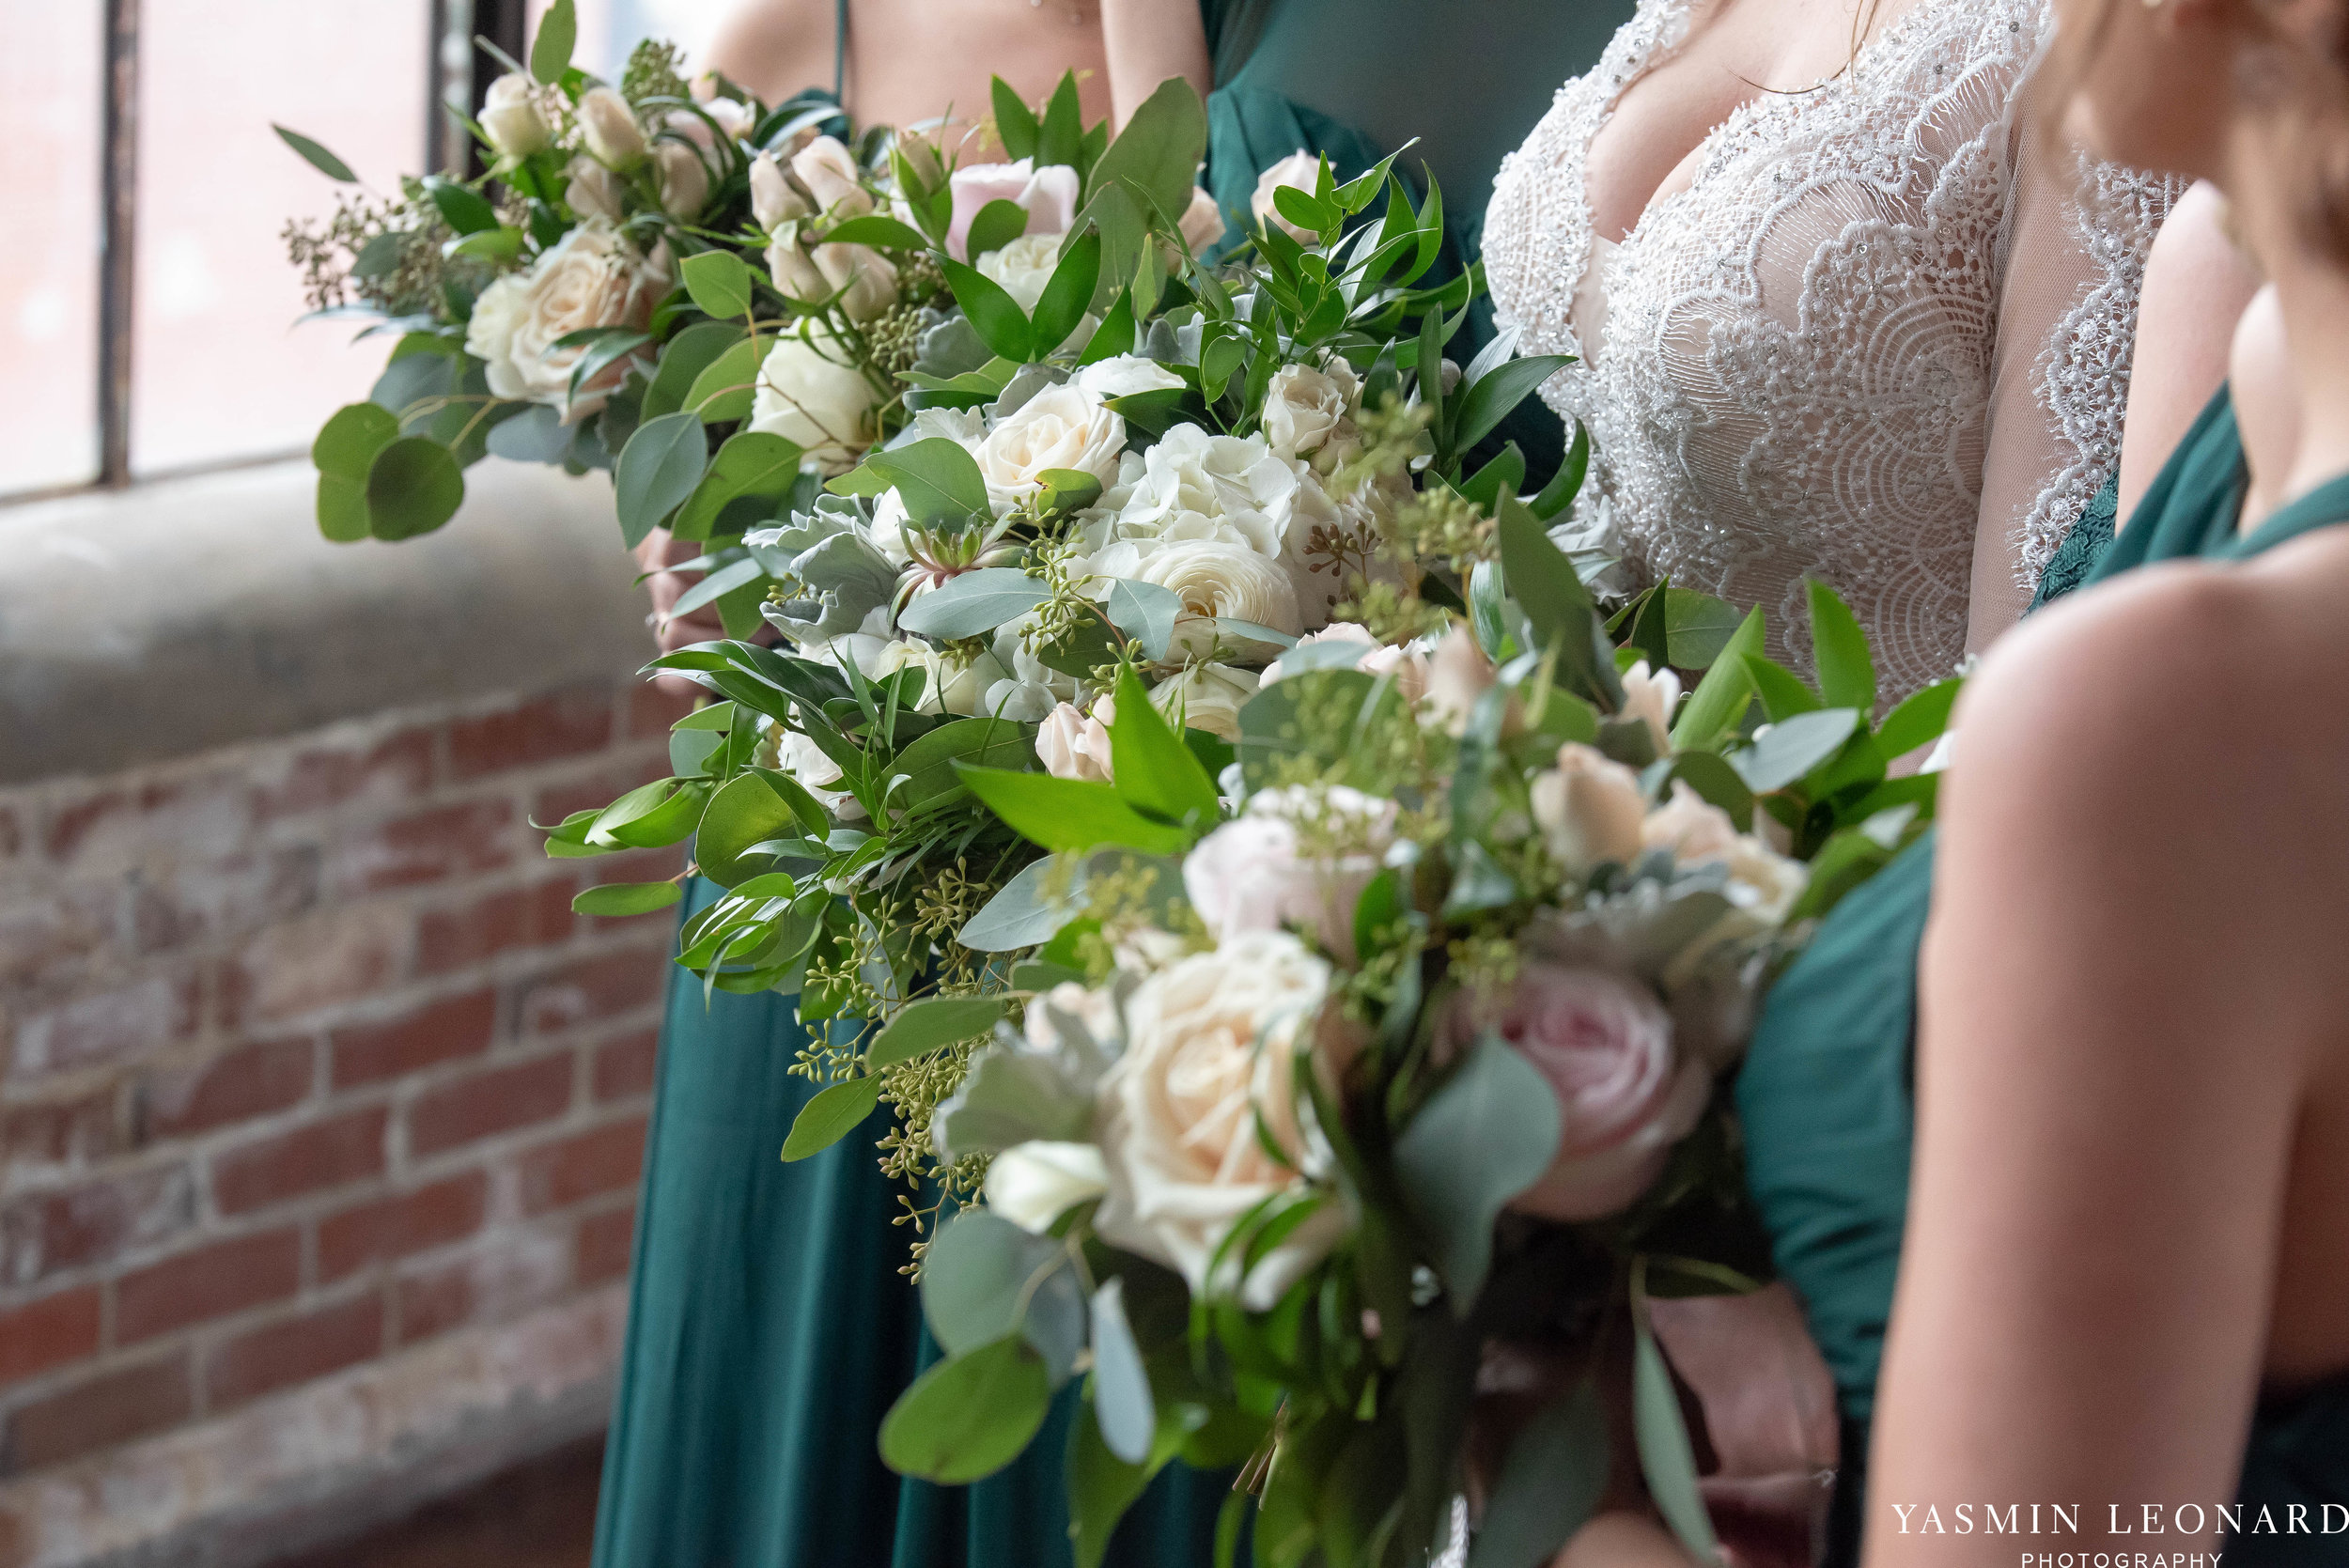 The Lofts at Union Square - Unions - High Point Weddings - NC Weddings - NC Wedding Photographer - Yasmin Leonard Photography - Just Priceless - Green Pink and Gold Wedding - Elegant Wedding-18.jpg